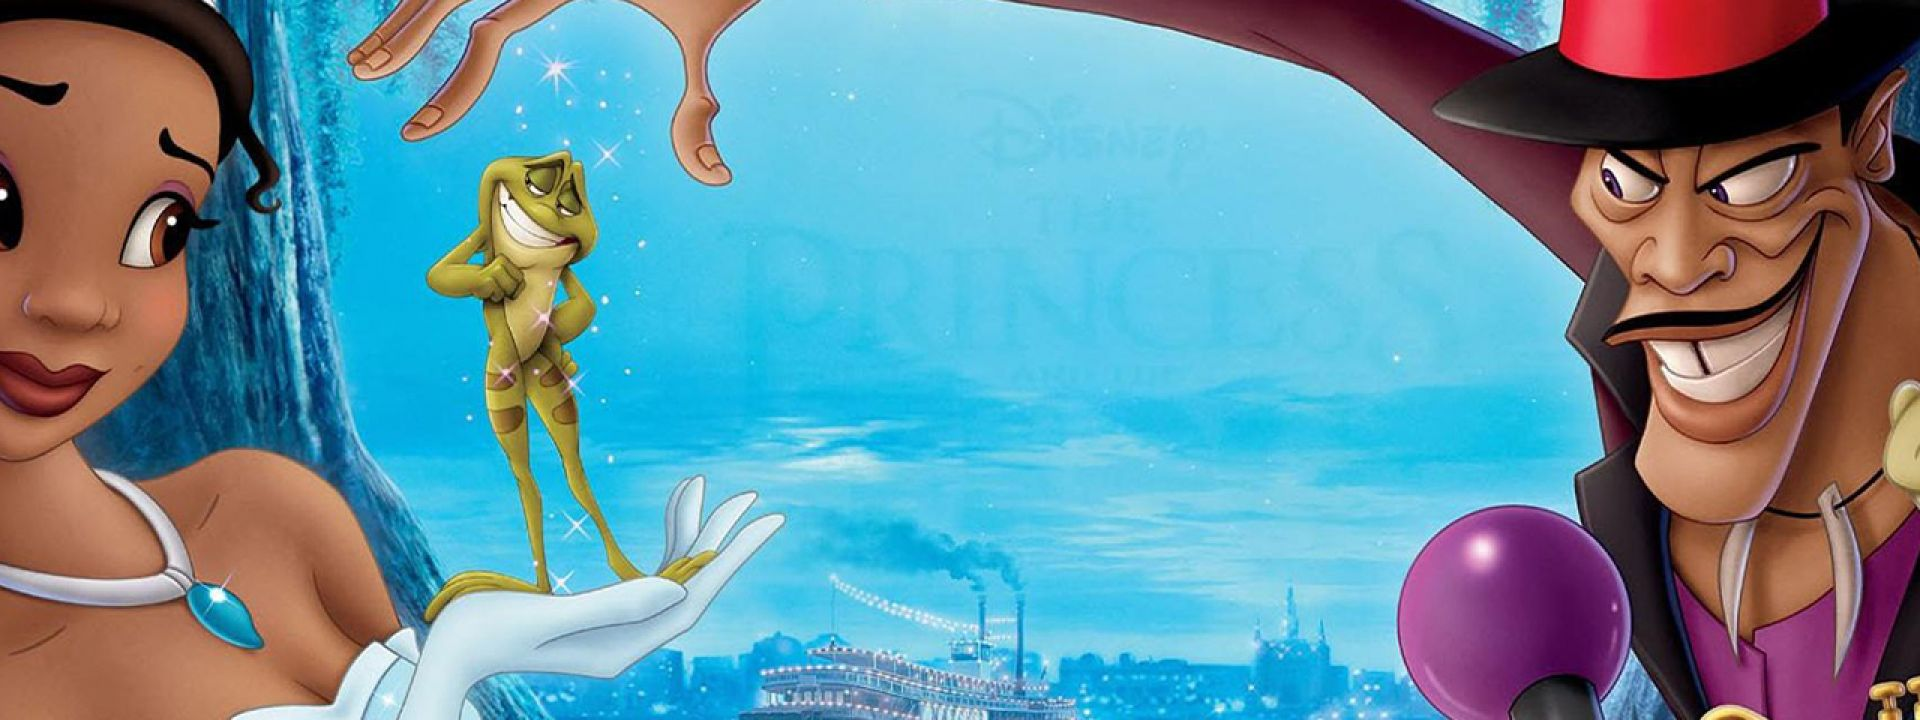 Park Your Cinema Kids: The Princess and the Frog (2009) - Εικόνα